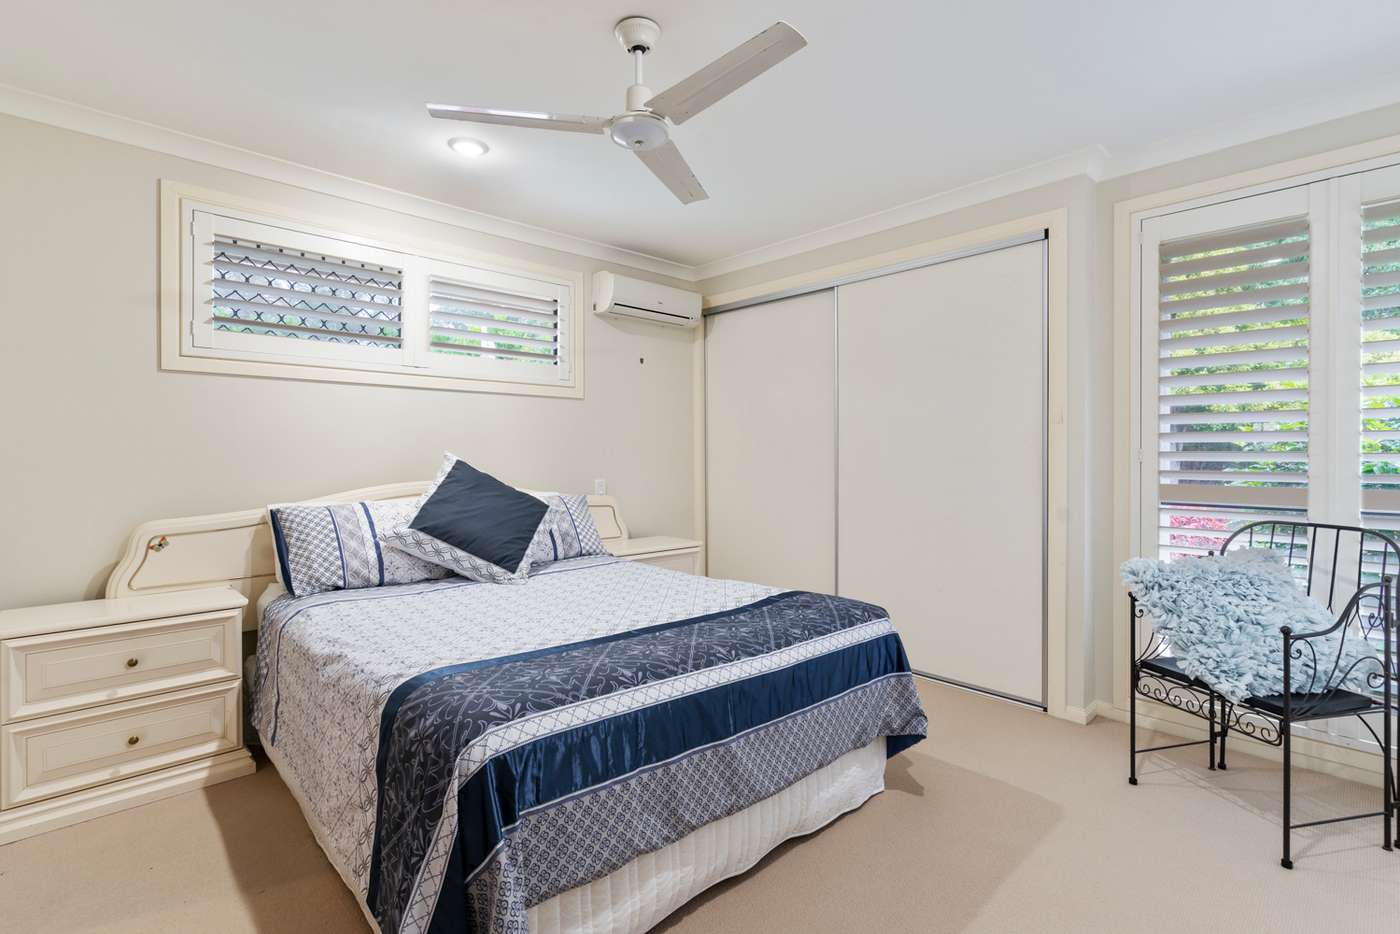 Fifth view of Homely house listing, 15 Highgrove Circuit, Peregian Springs QLD 4573